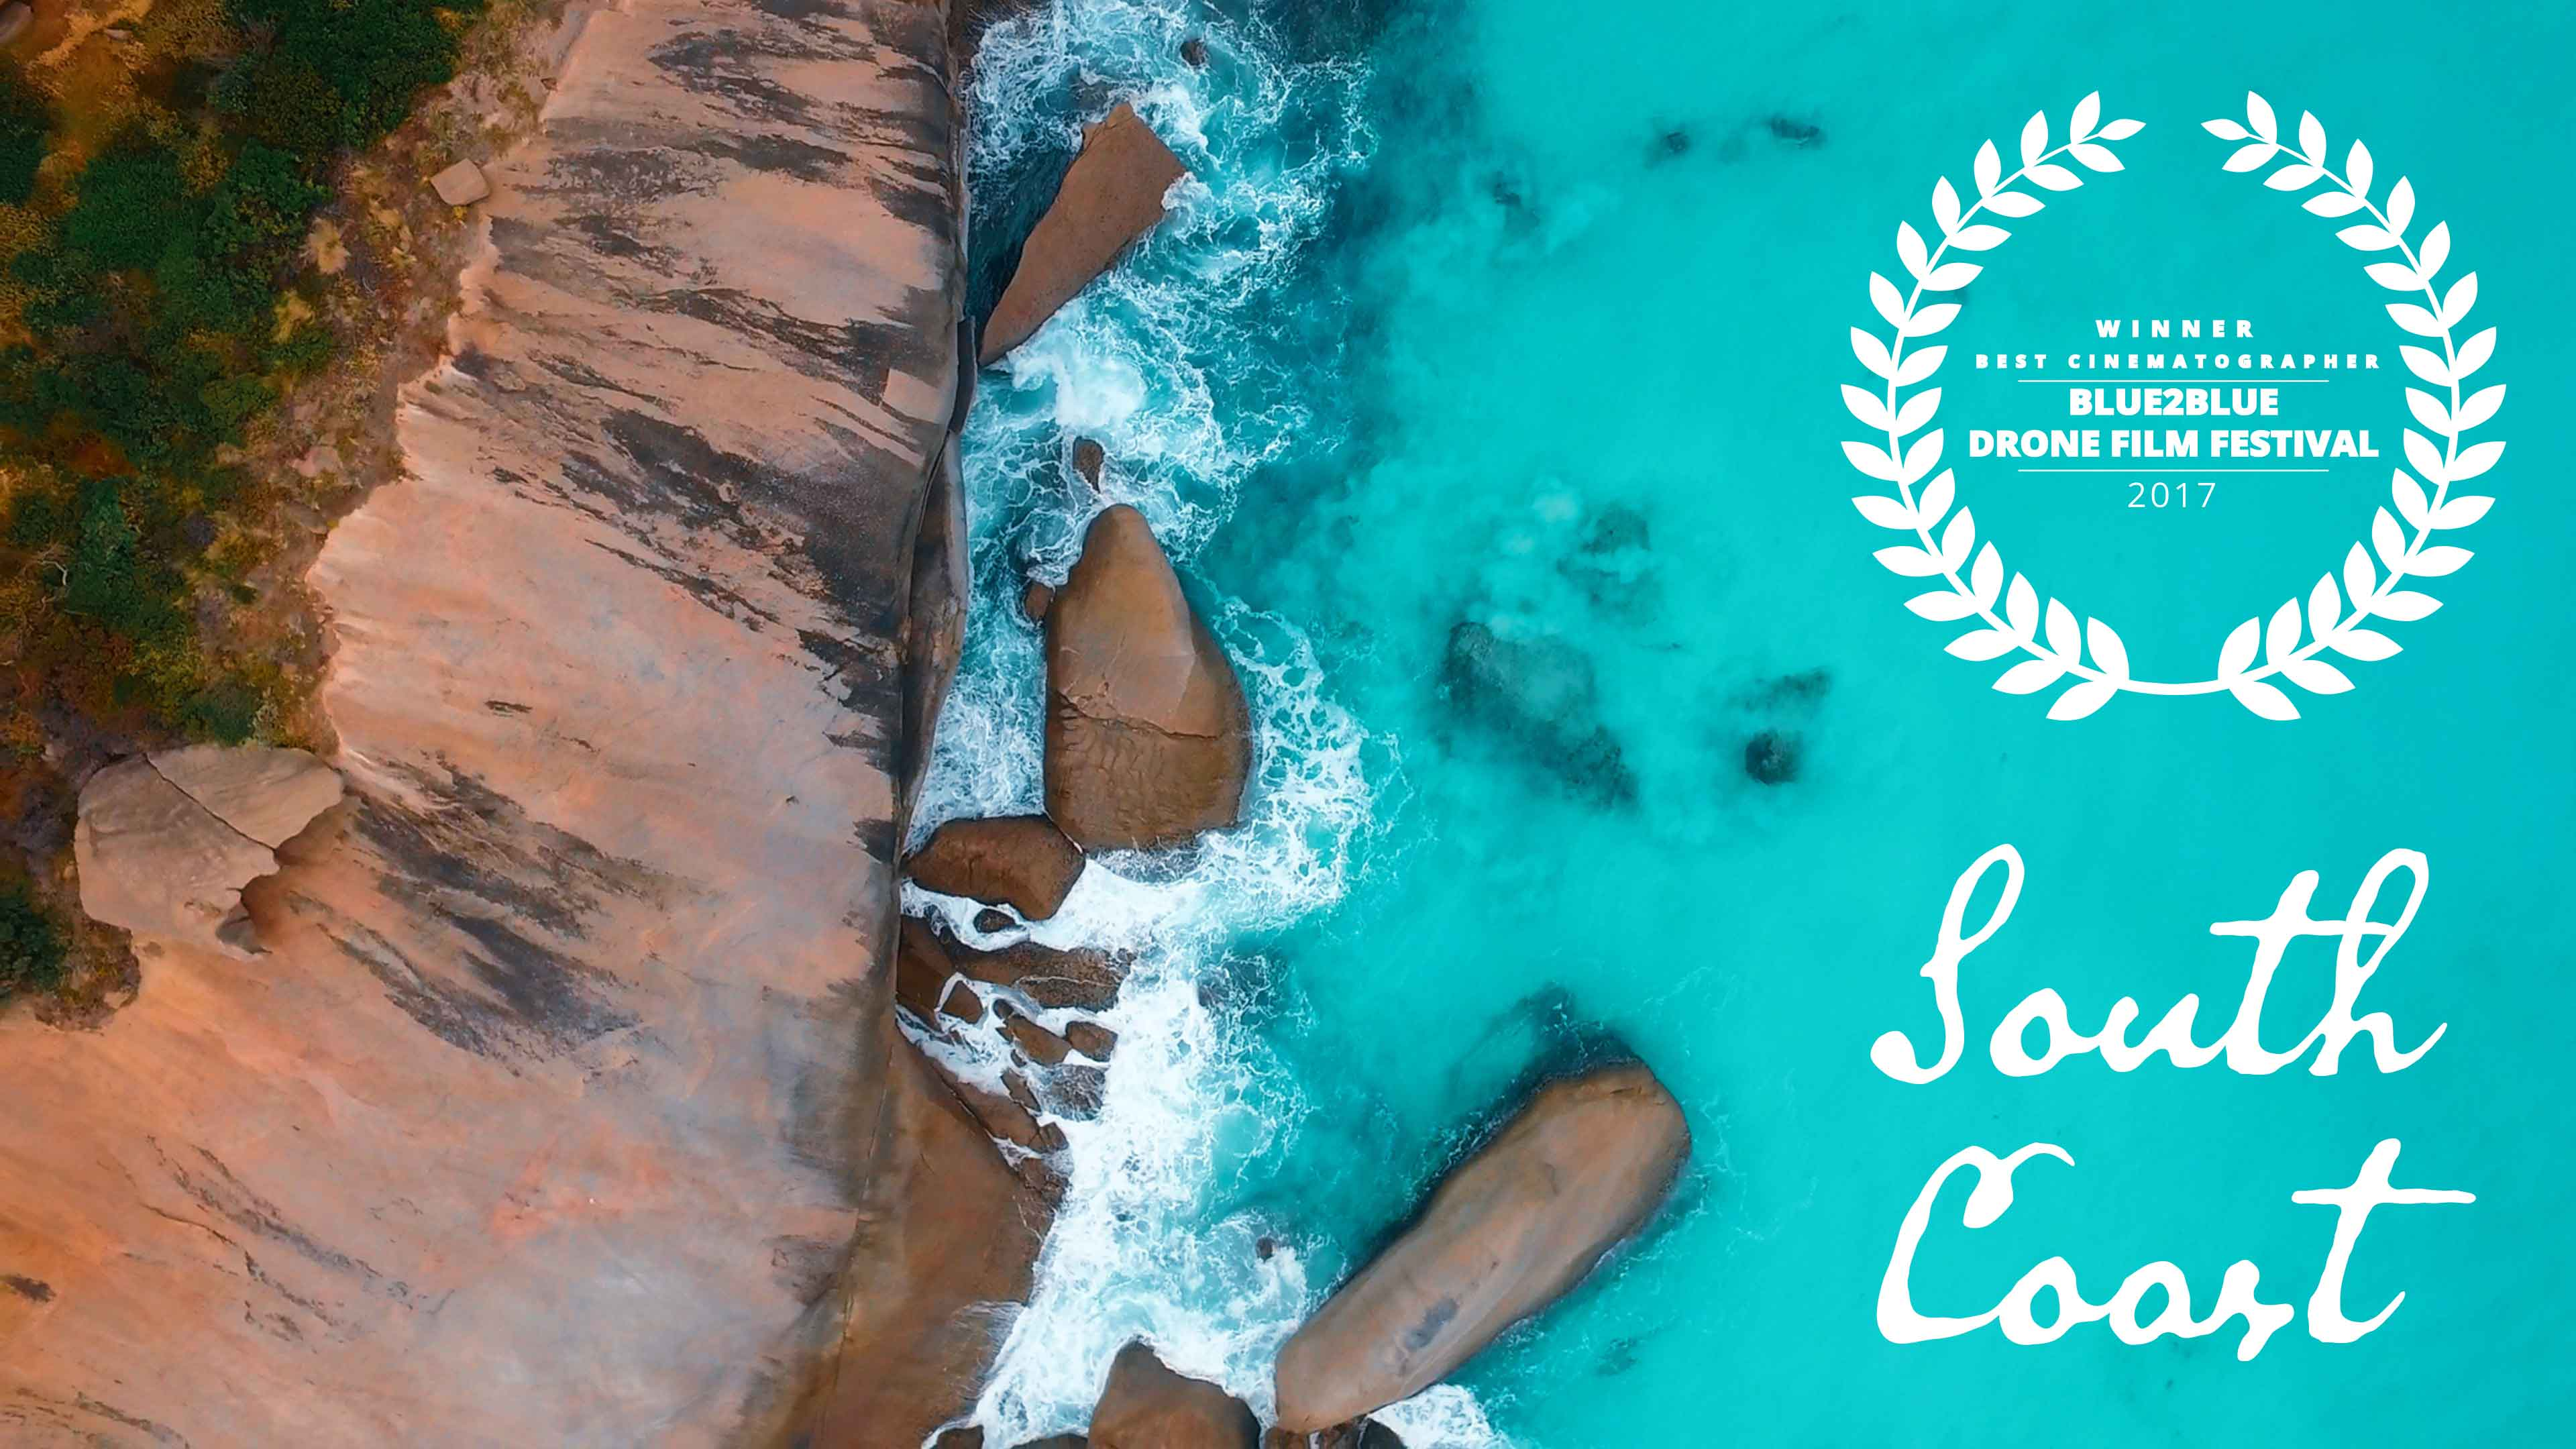 winner-blue2blue-film-festival-south-coast-droneimagewa-scott-palmer-best-cinematographer